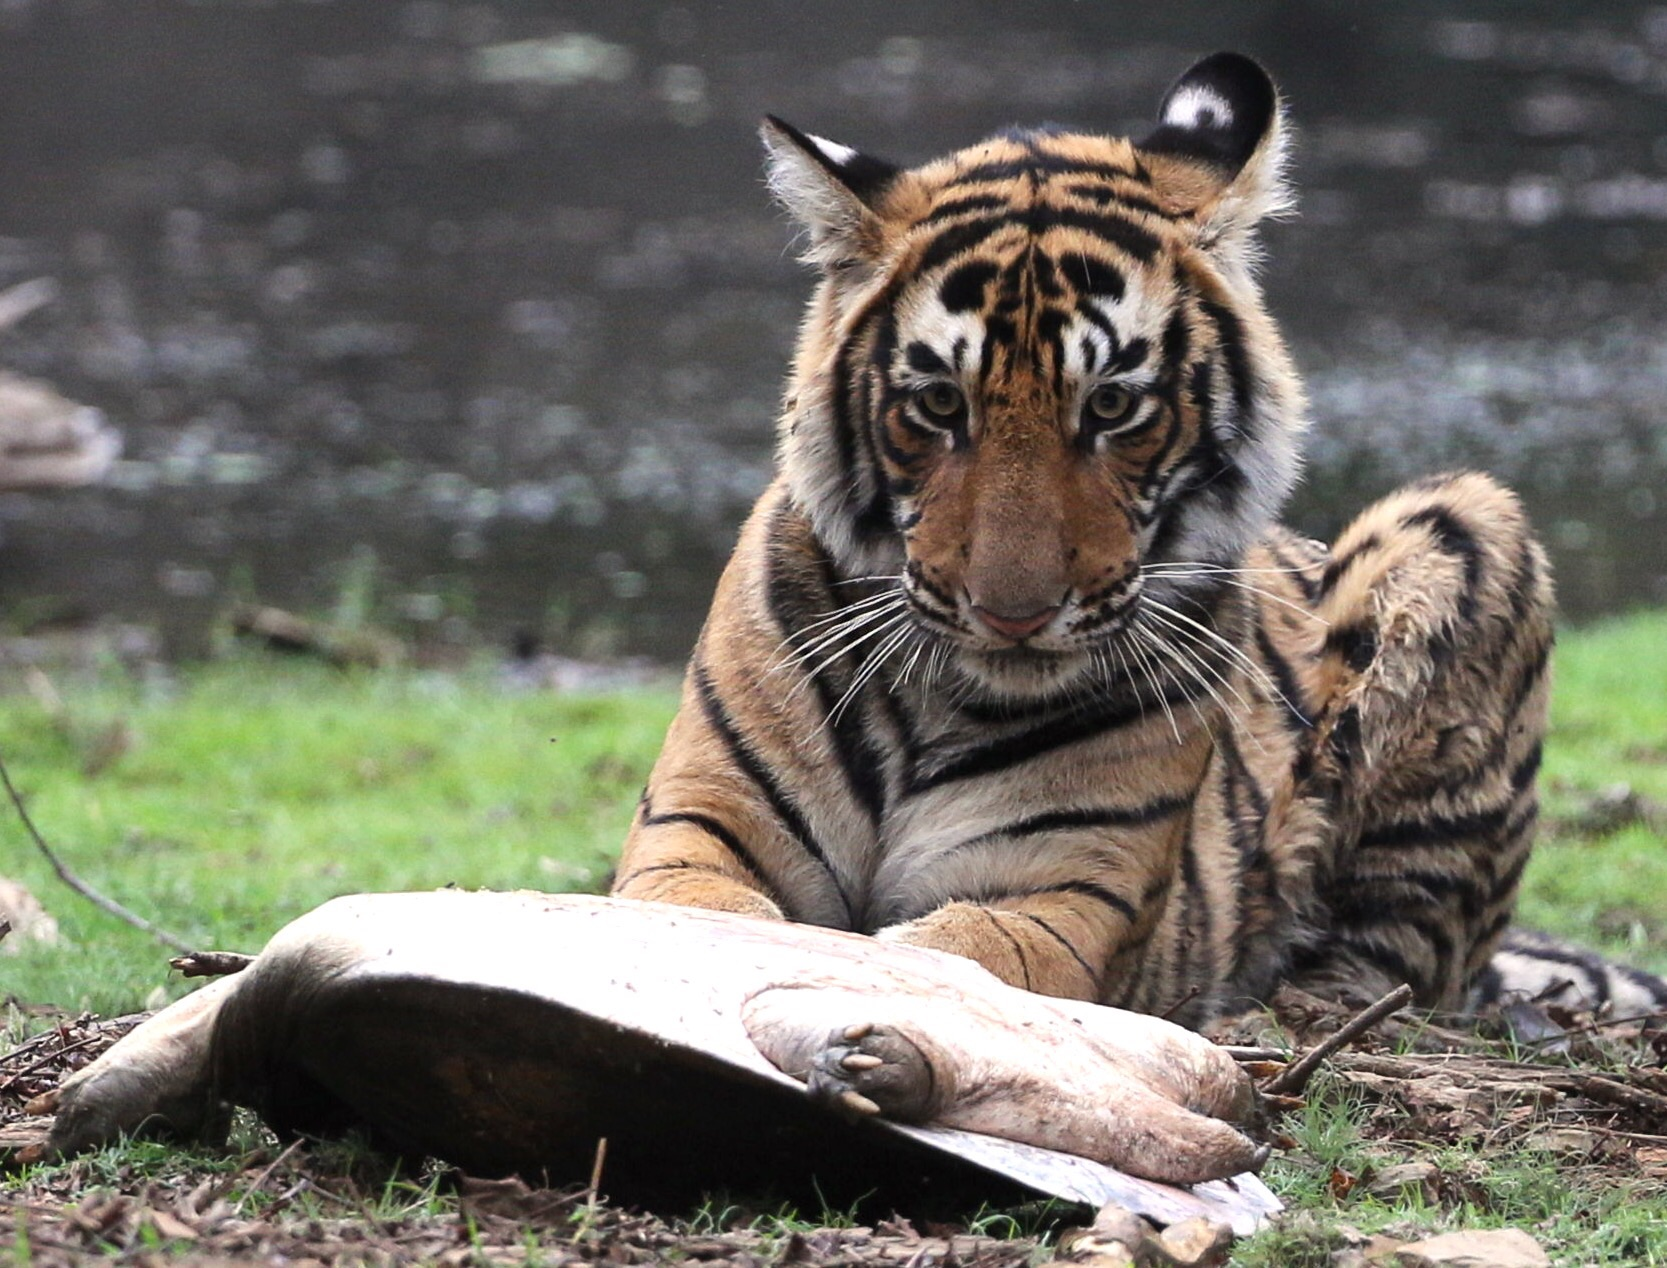 Tiger cub with turtle!